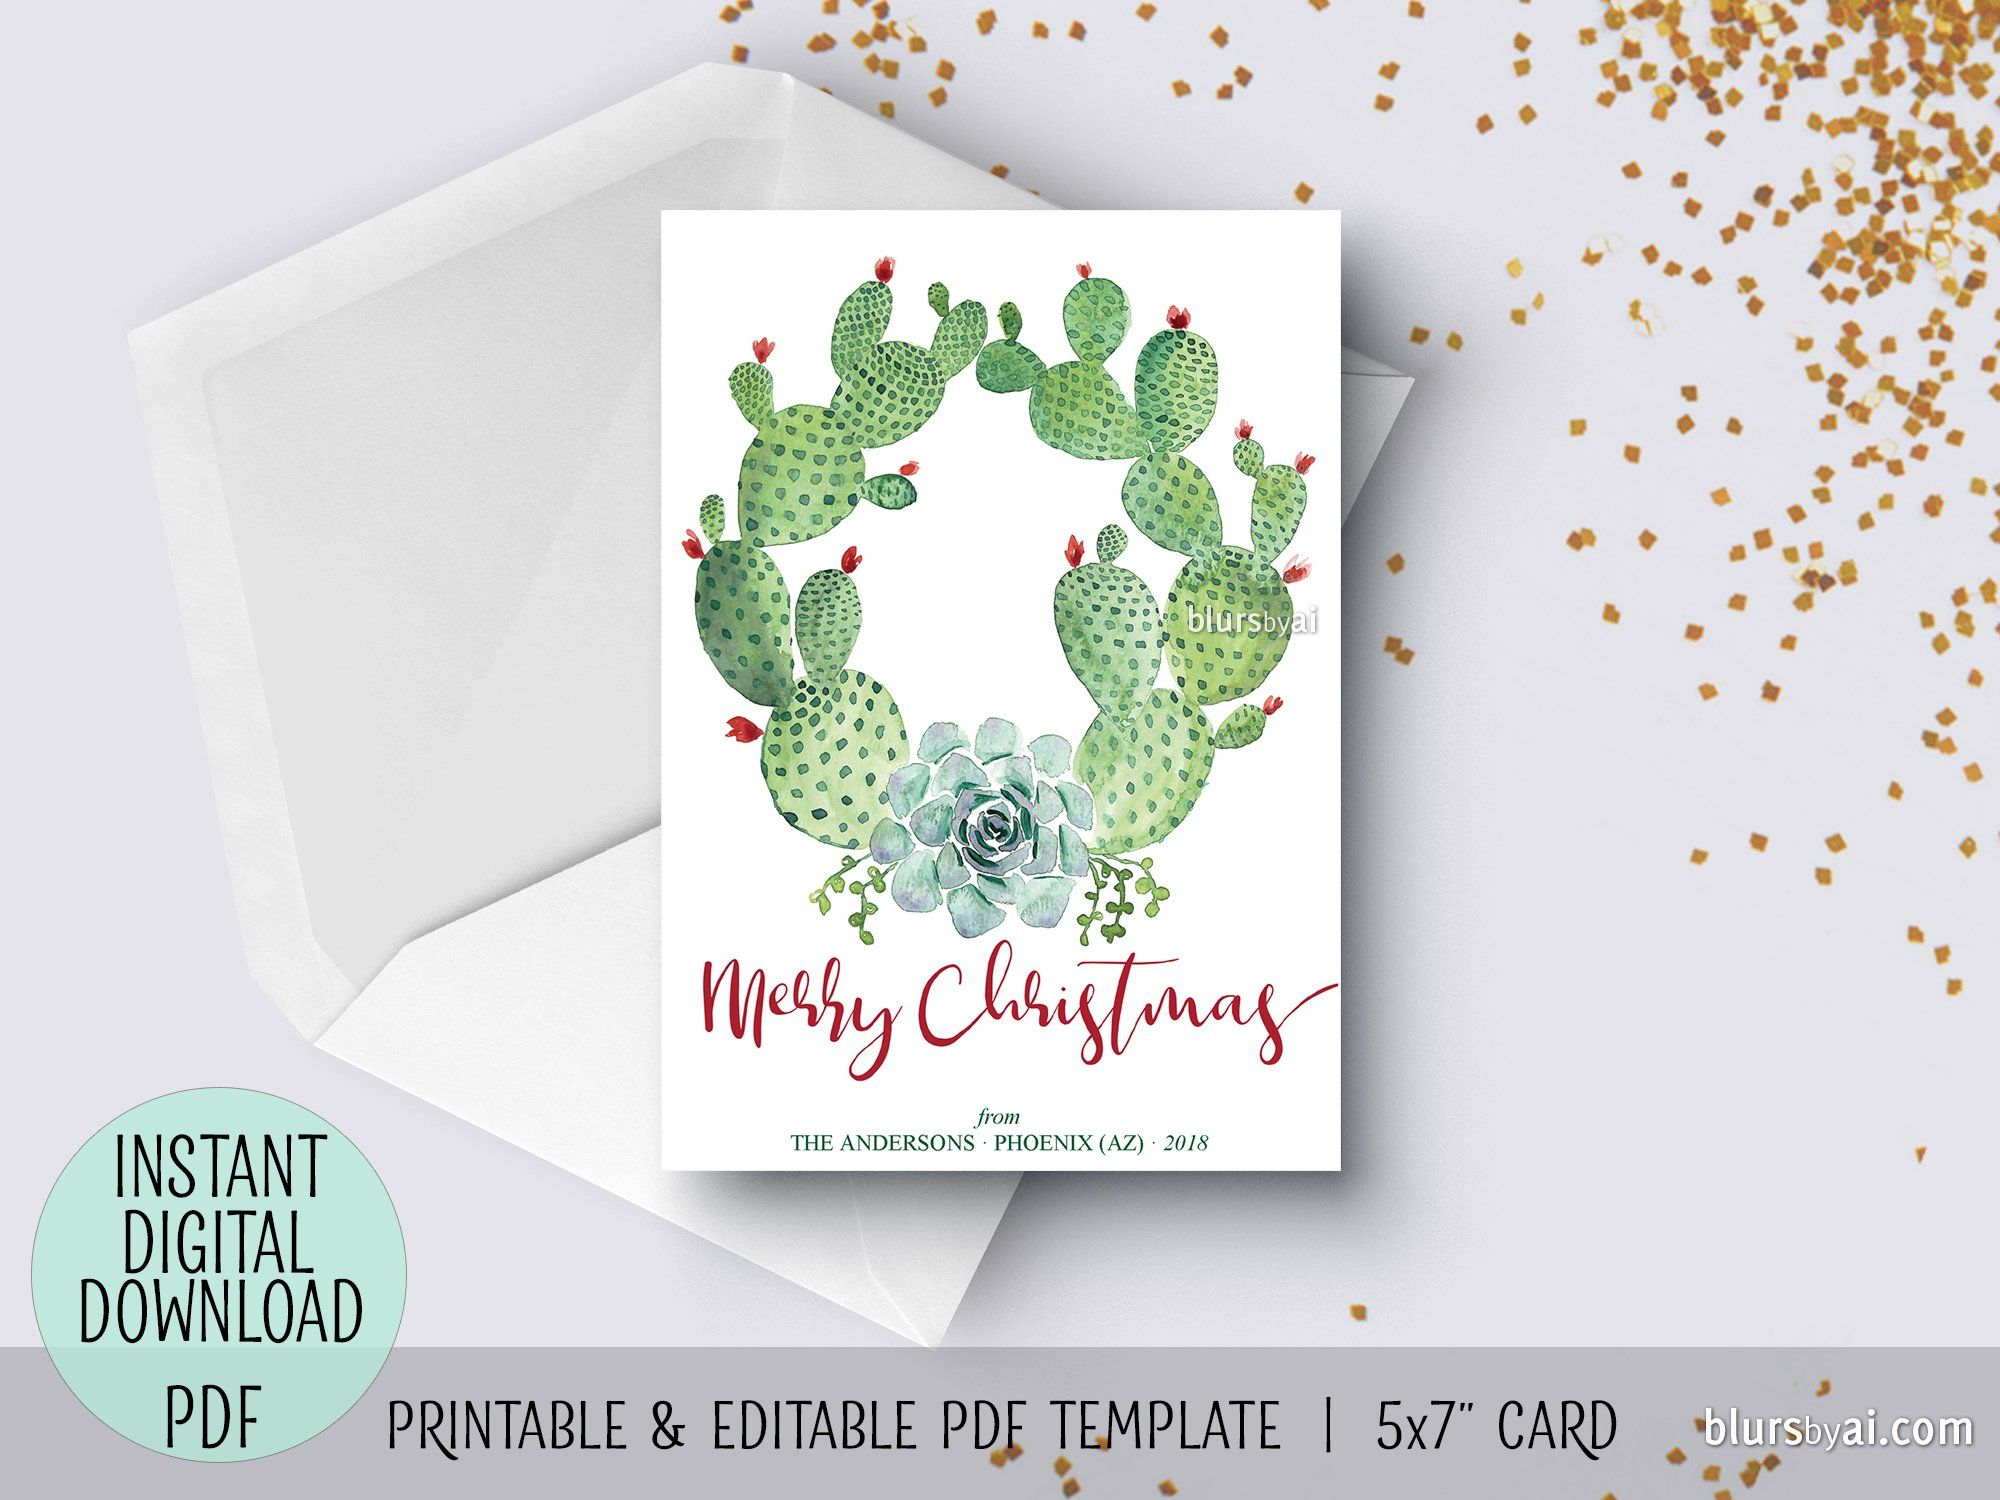 Editable Pdf Christmas Card Template Cacti And Succulents Watercolor Wreath Watercolor Christmas Cards Christmas Card Template Christmas Cards Free